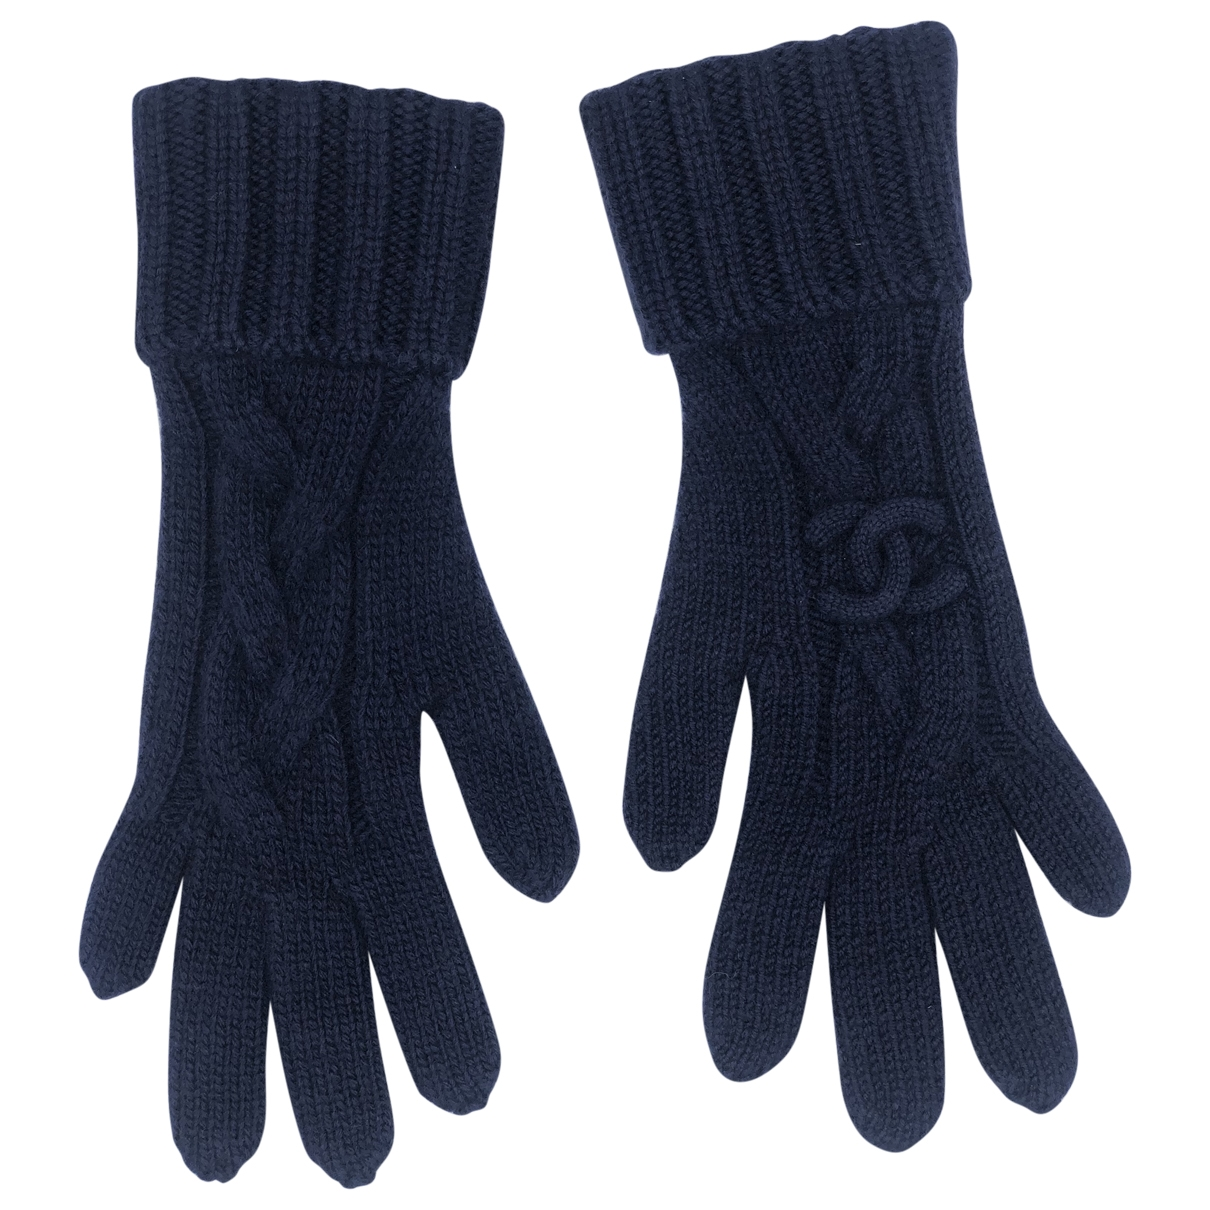 Chanel \N Navy Cashmere Gloves for Women M International